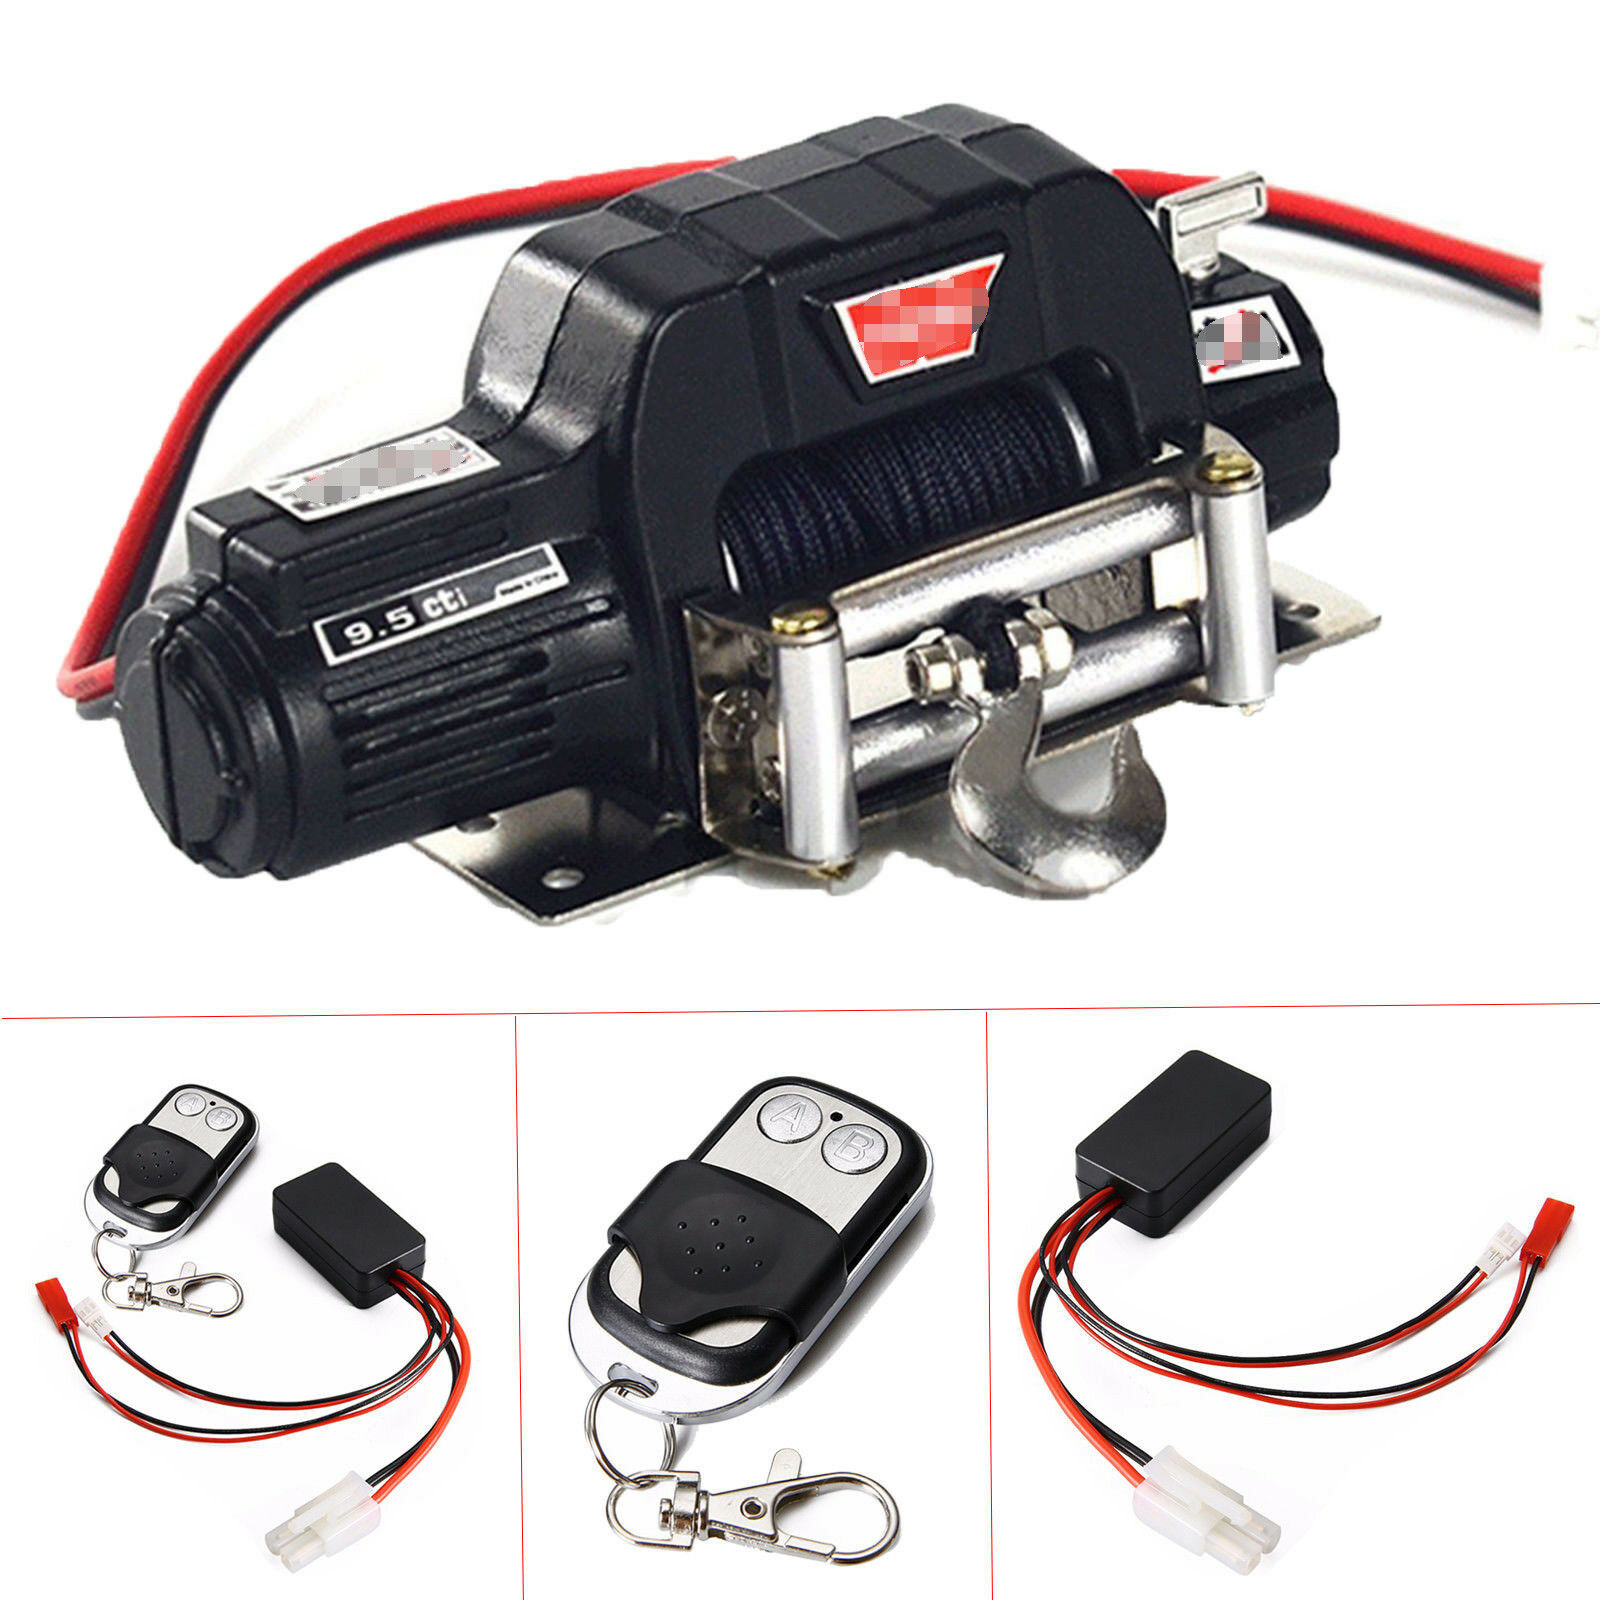 Warn  9.5cti Winch + Remote Control Receiver Kit For RC Car 1 10 SCX10 Crawler